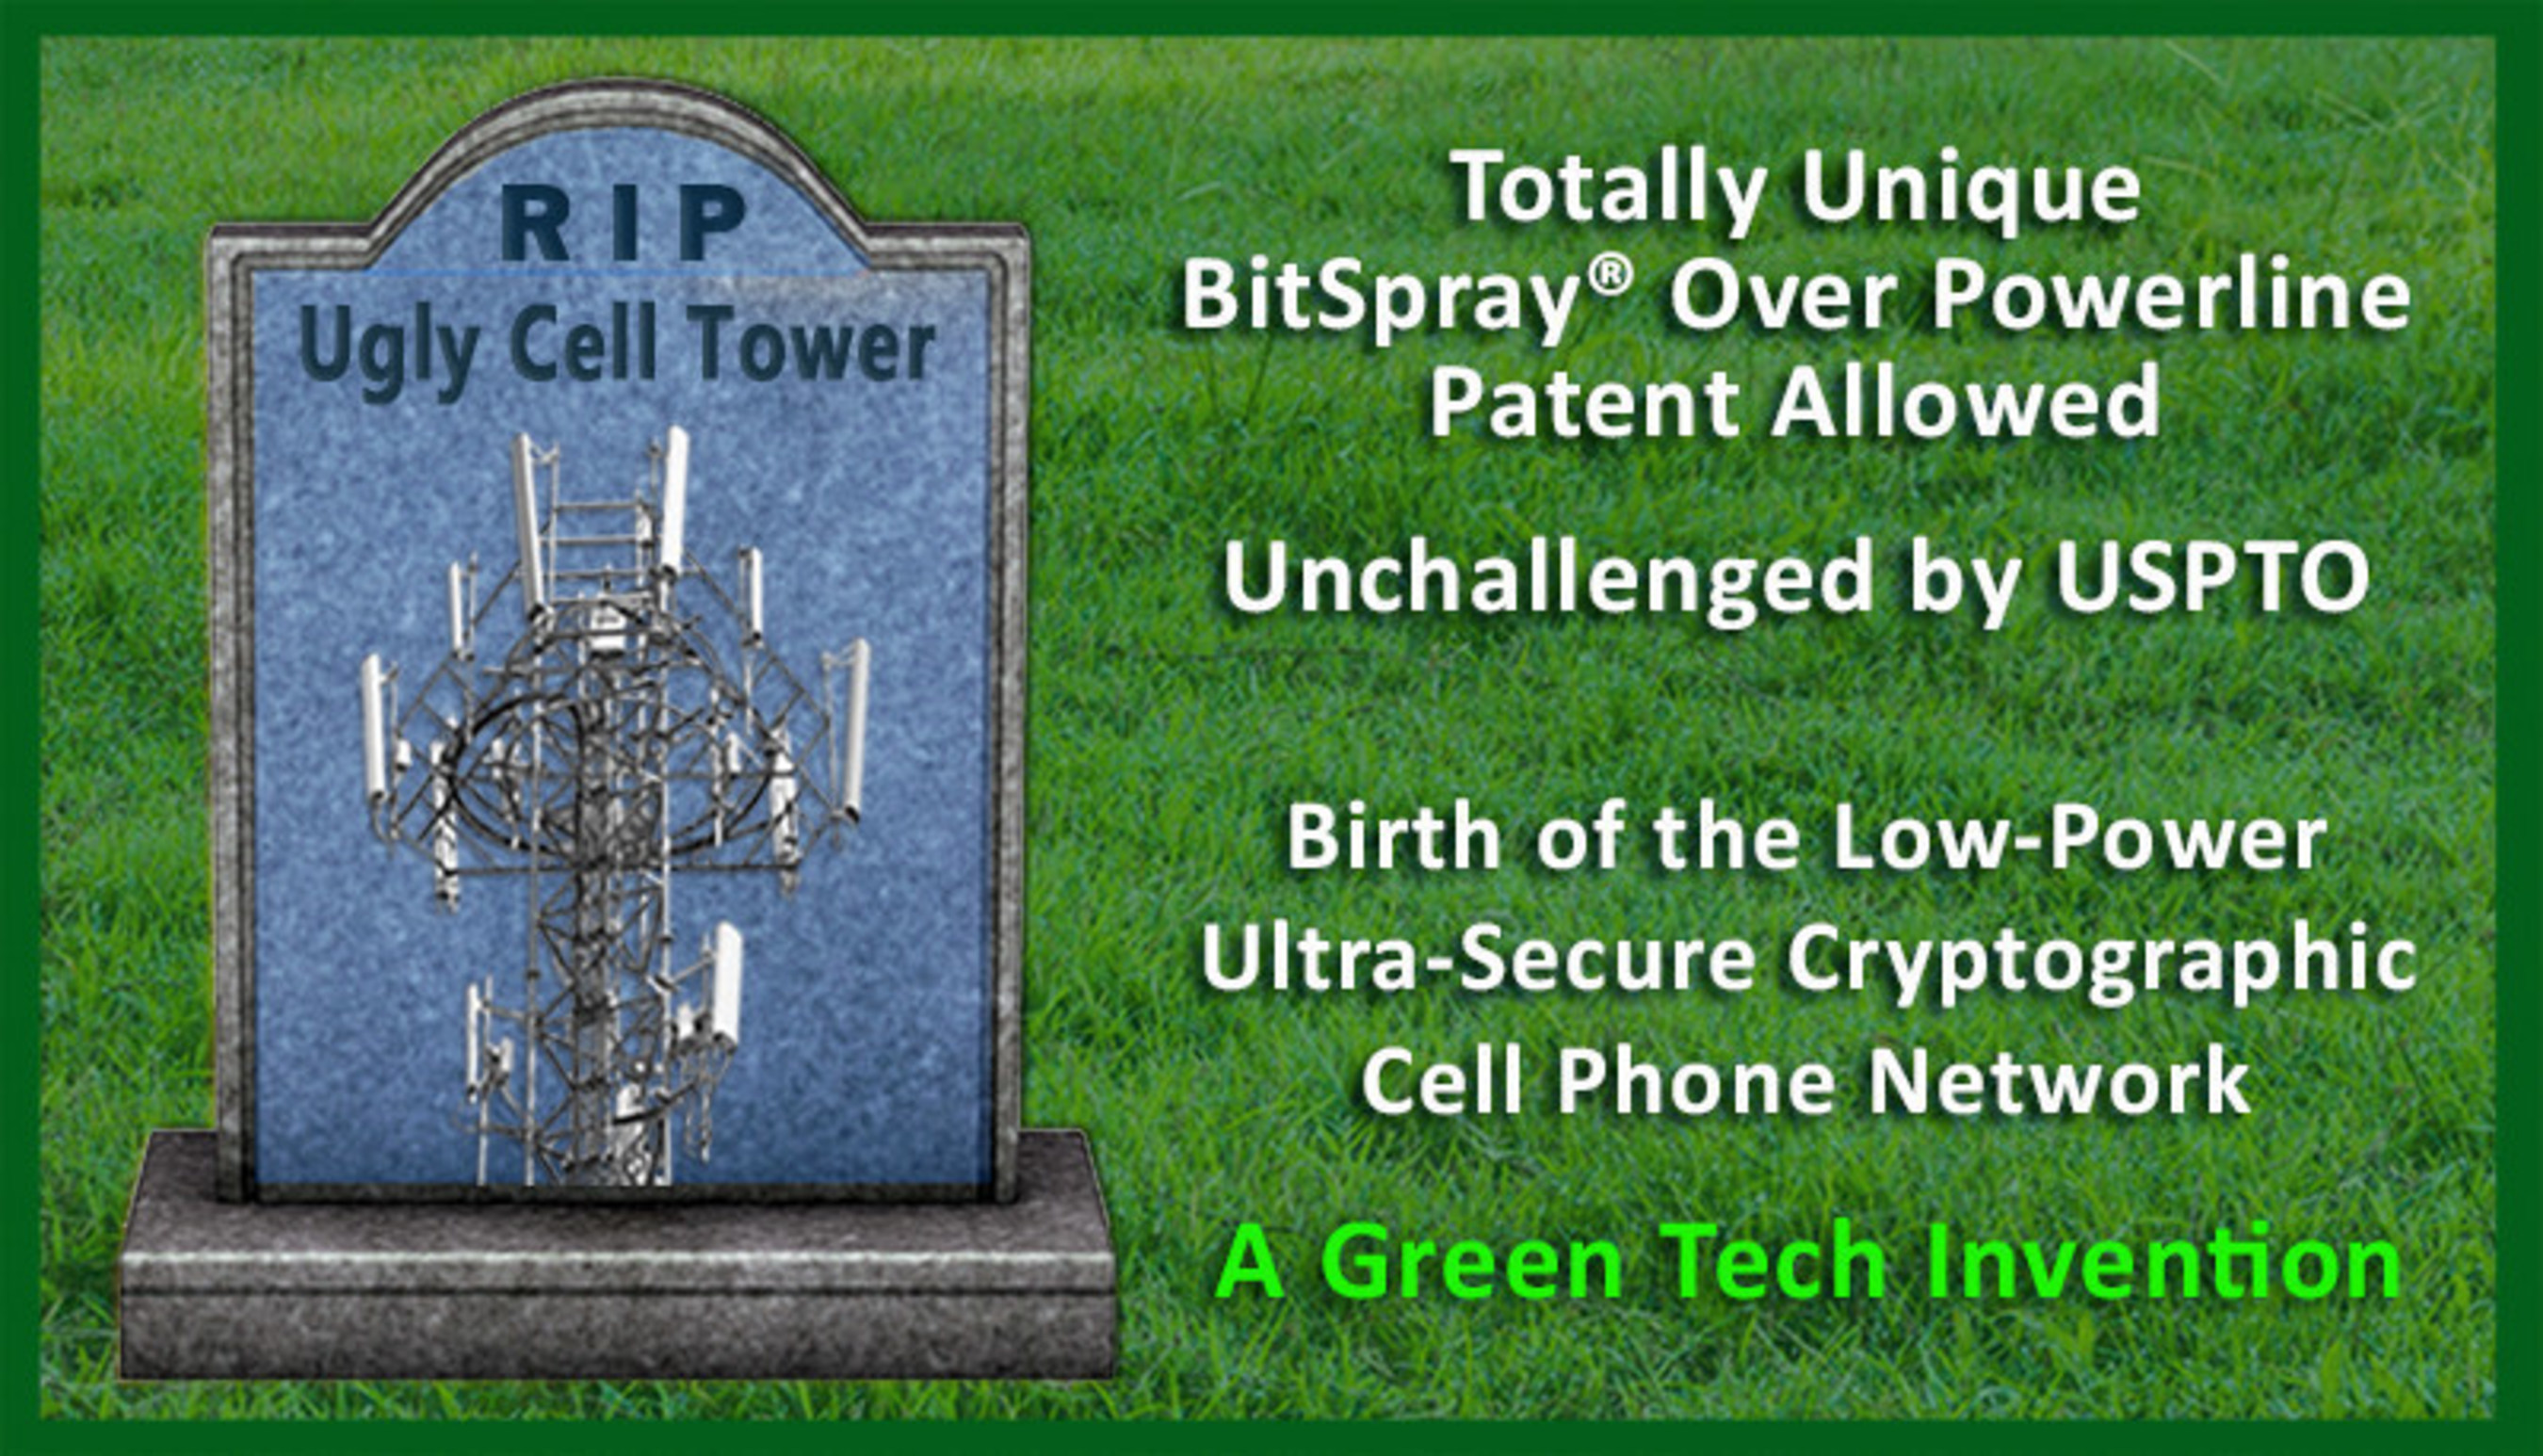 Death of the Cell Phone Tower